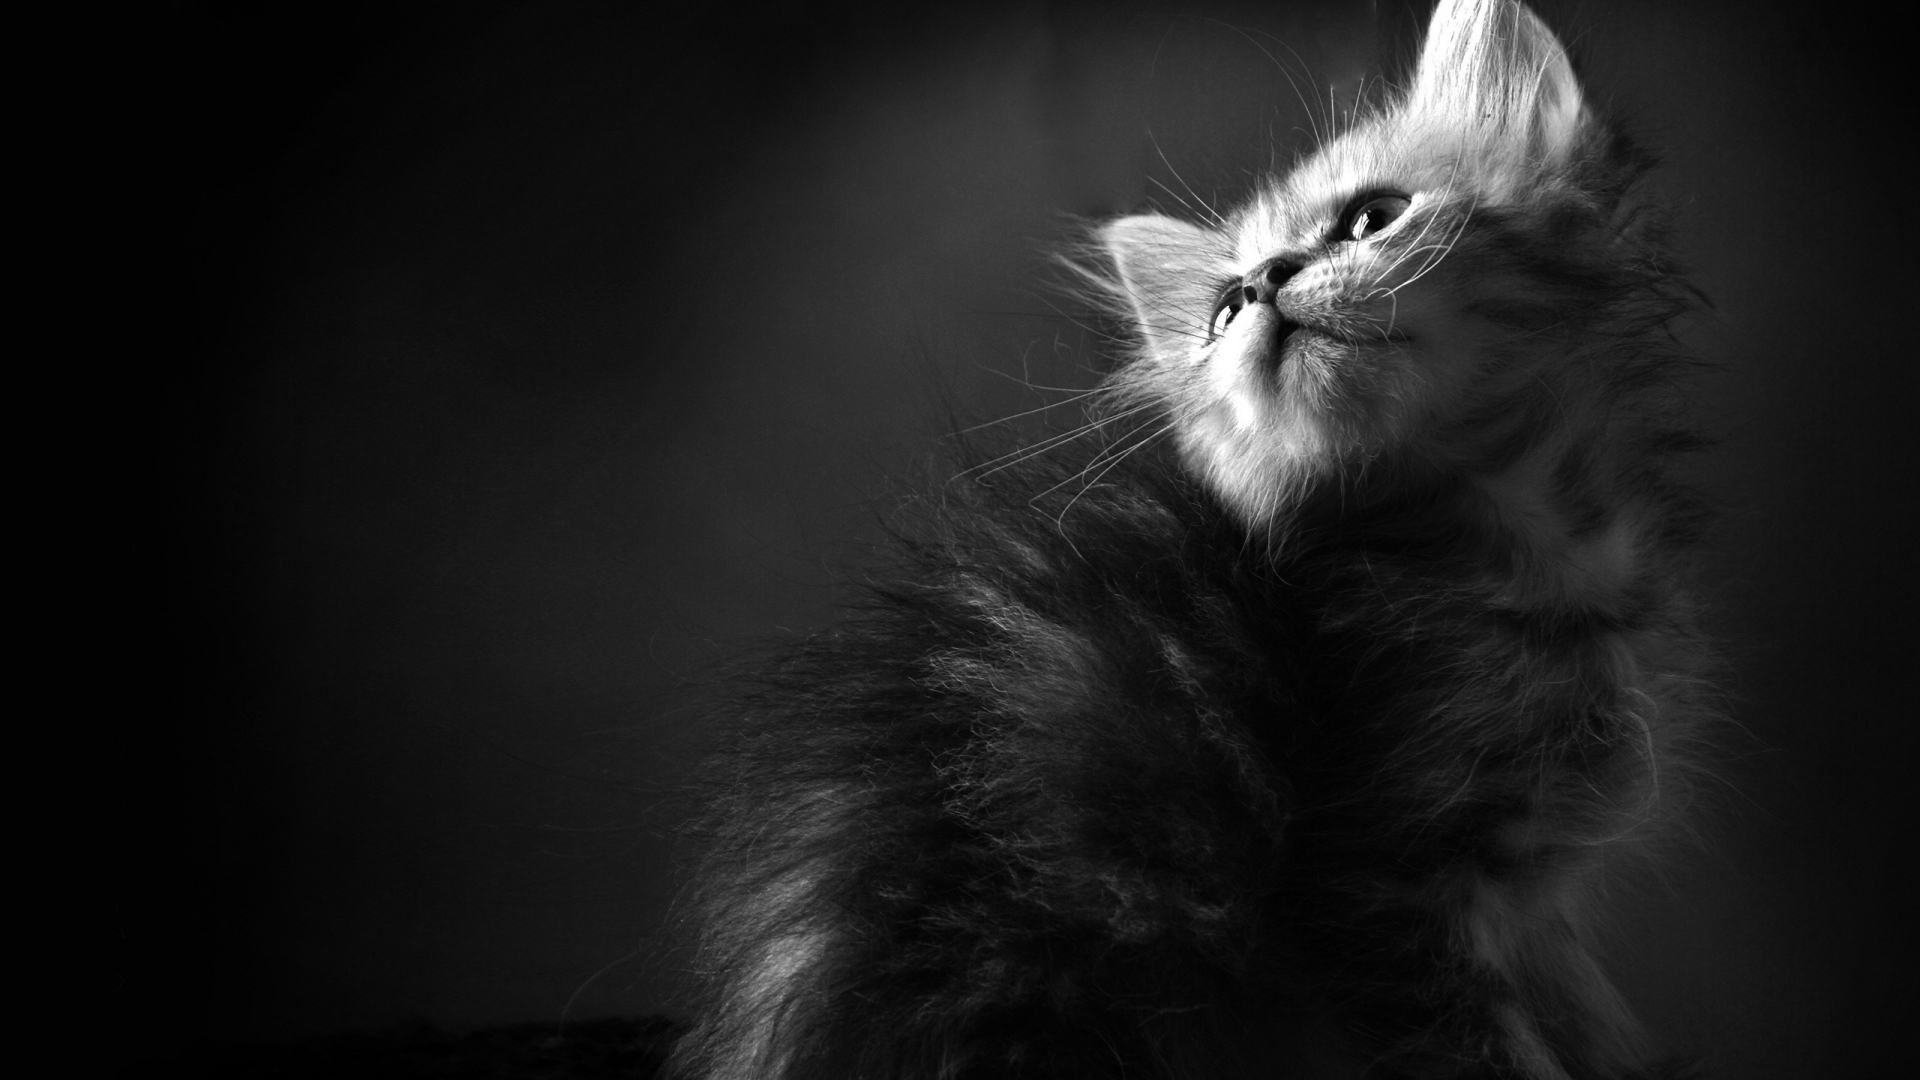 49127 download wallpaper Animals, Cats screensavers and pictures for free